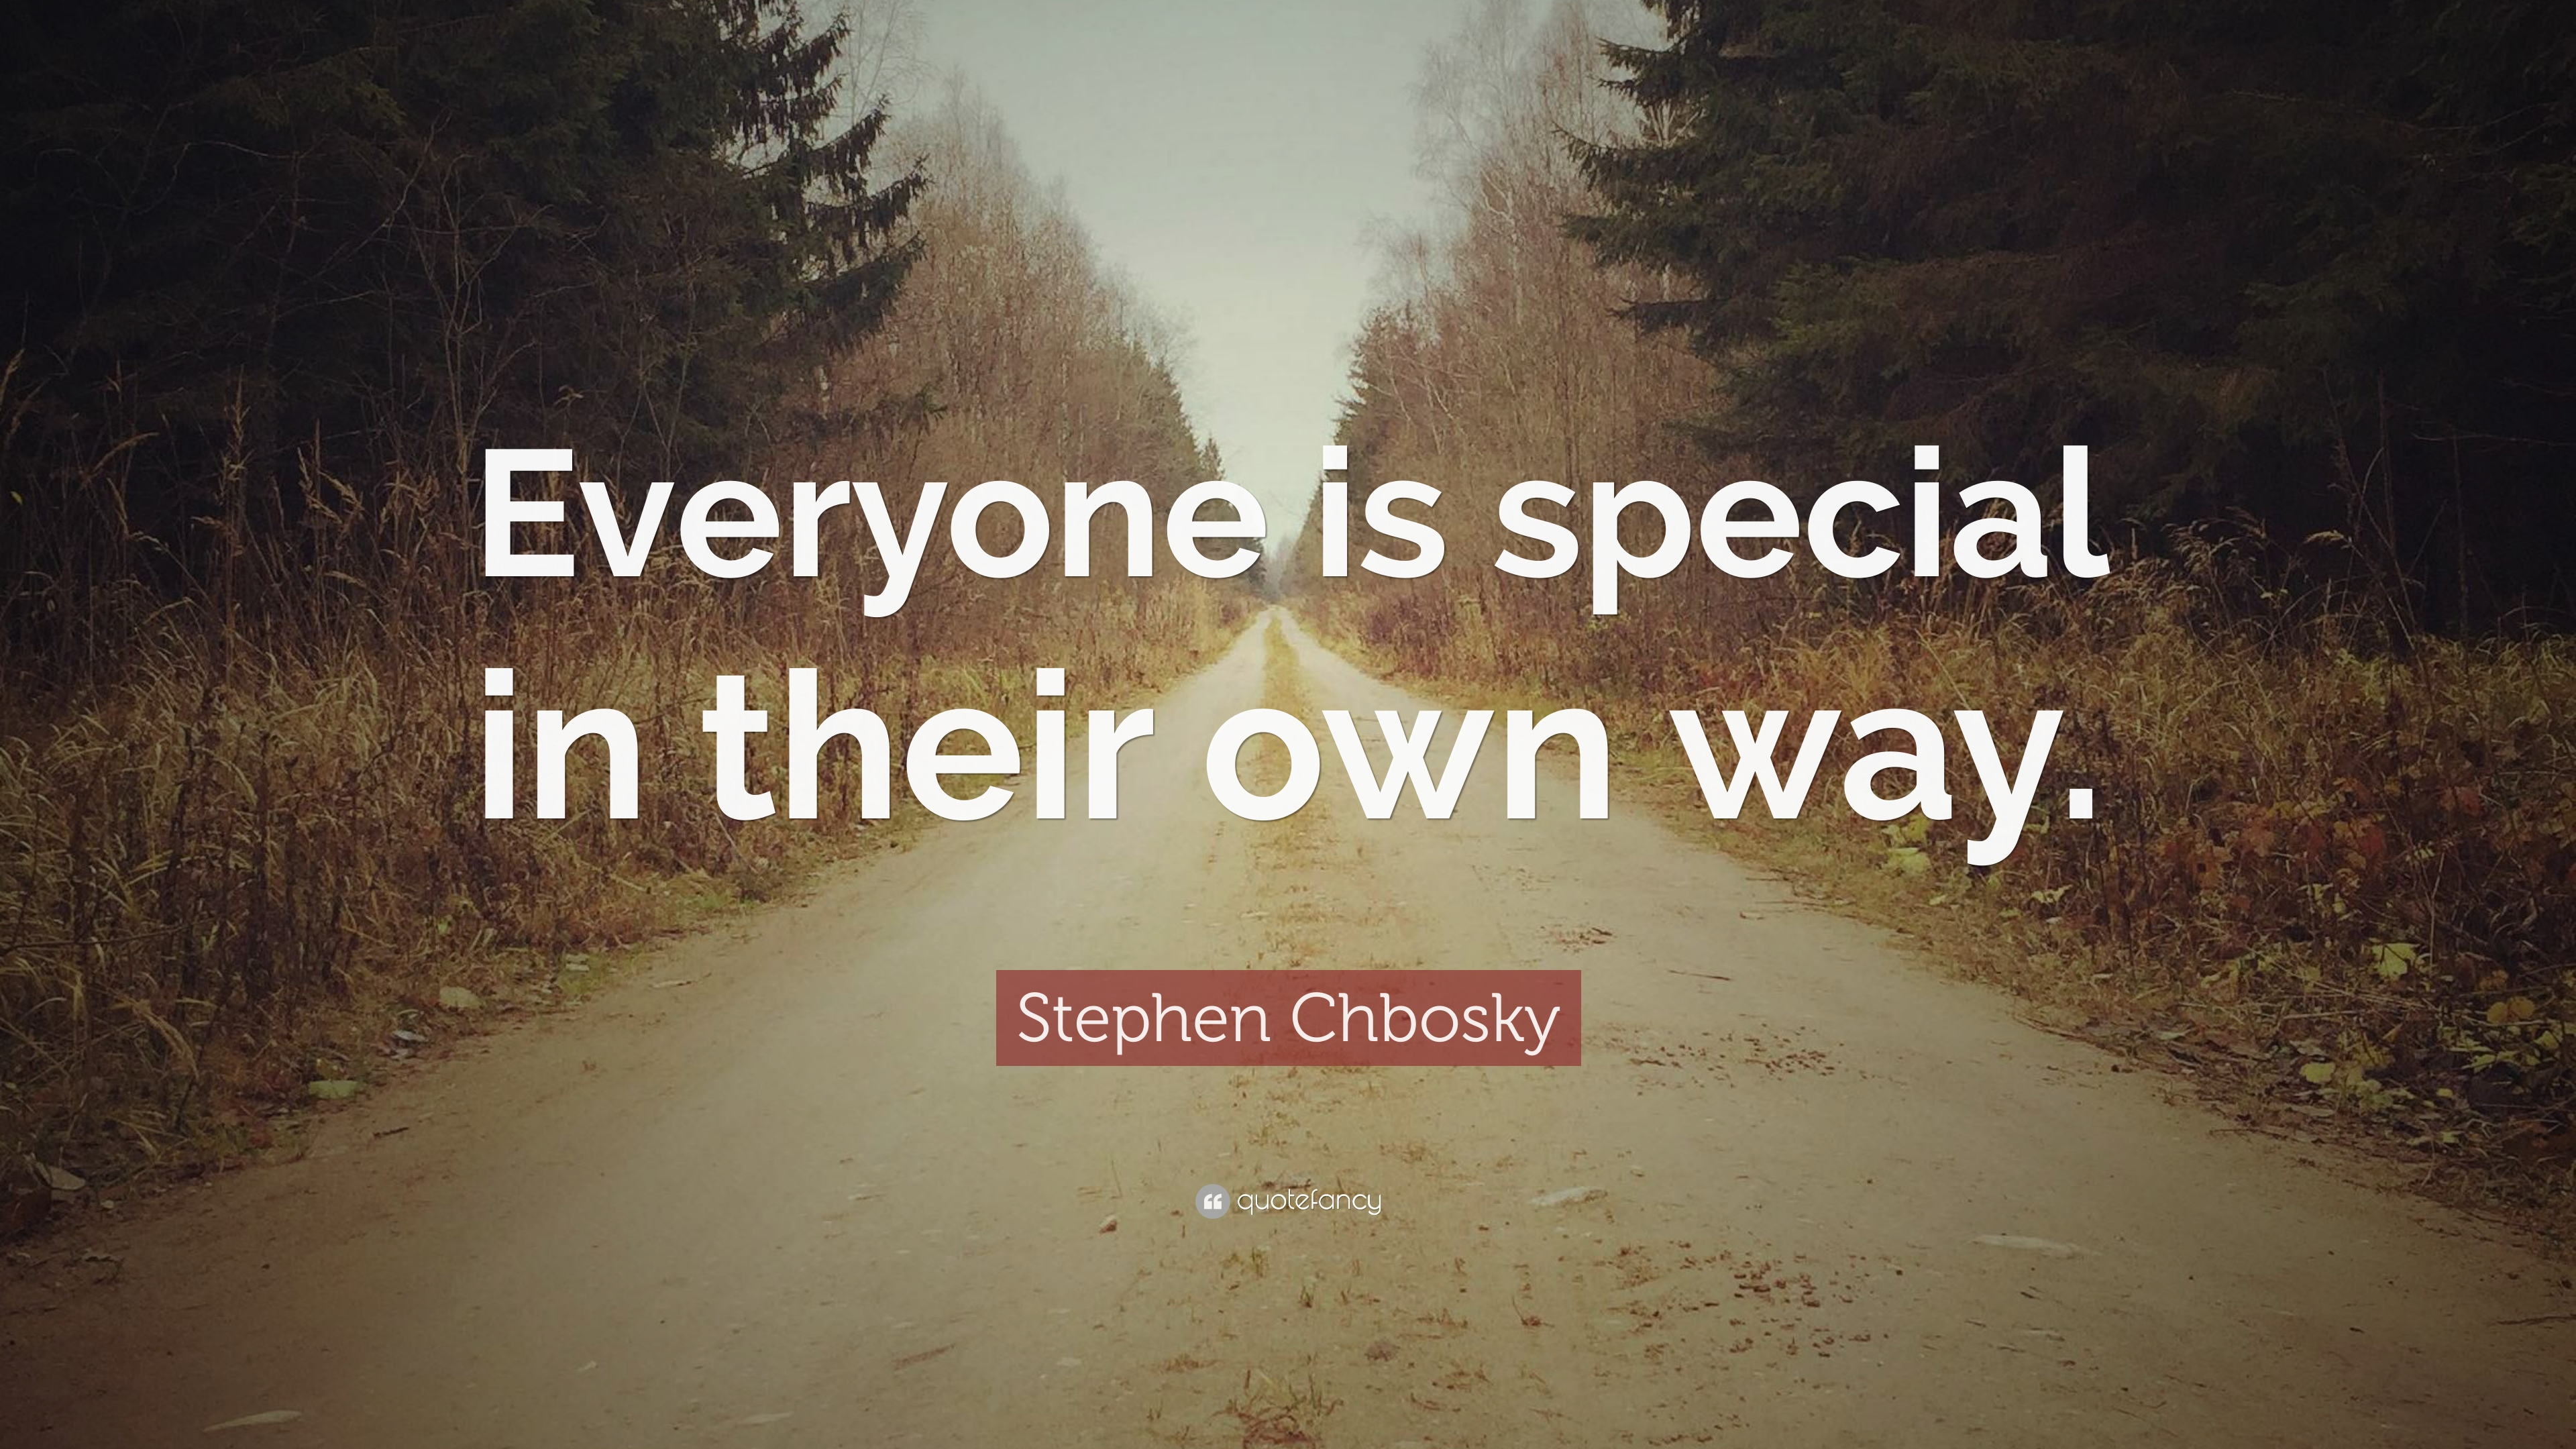 Everyone is special in their own way essay